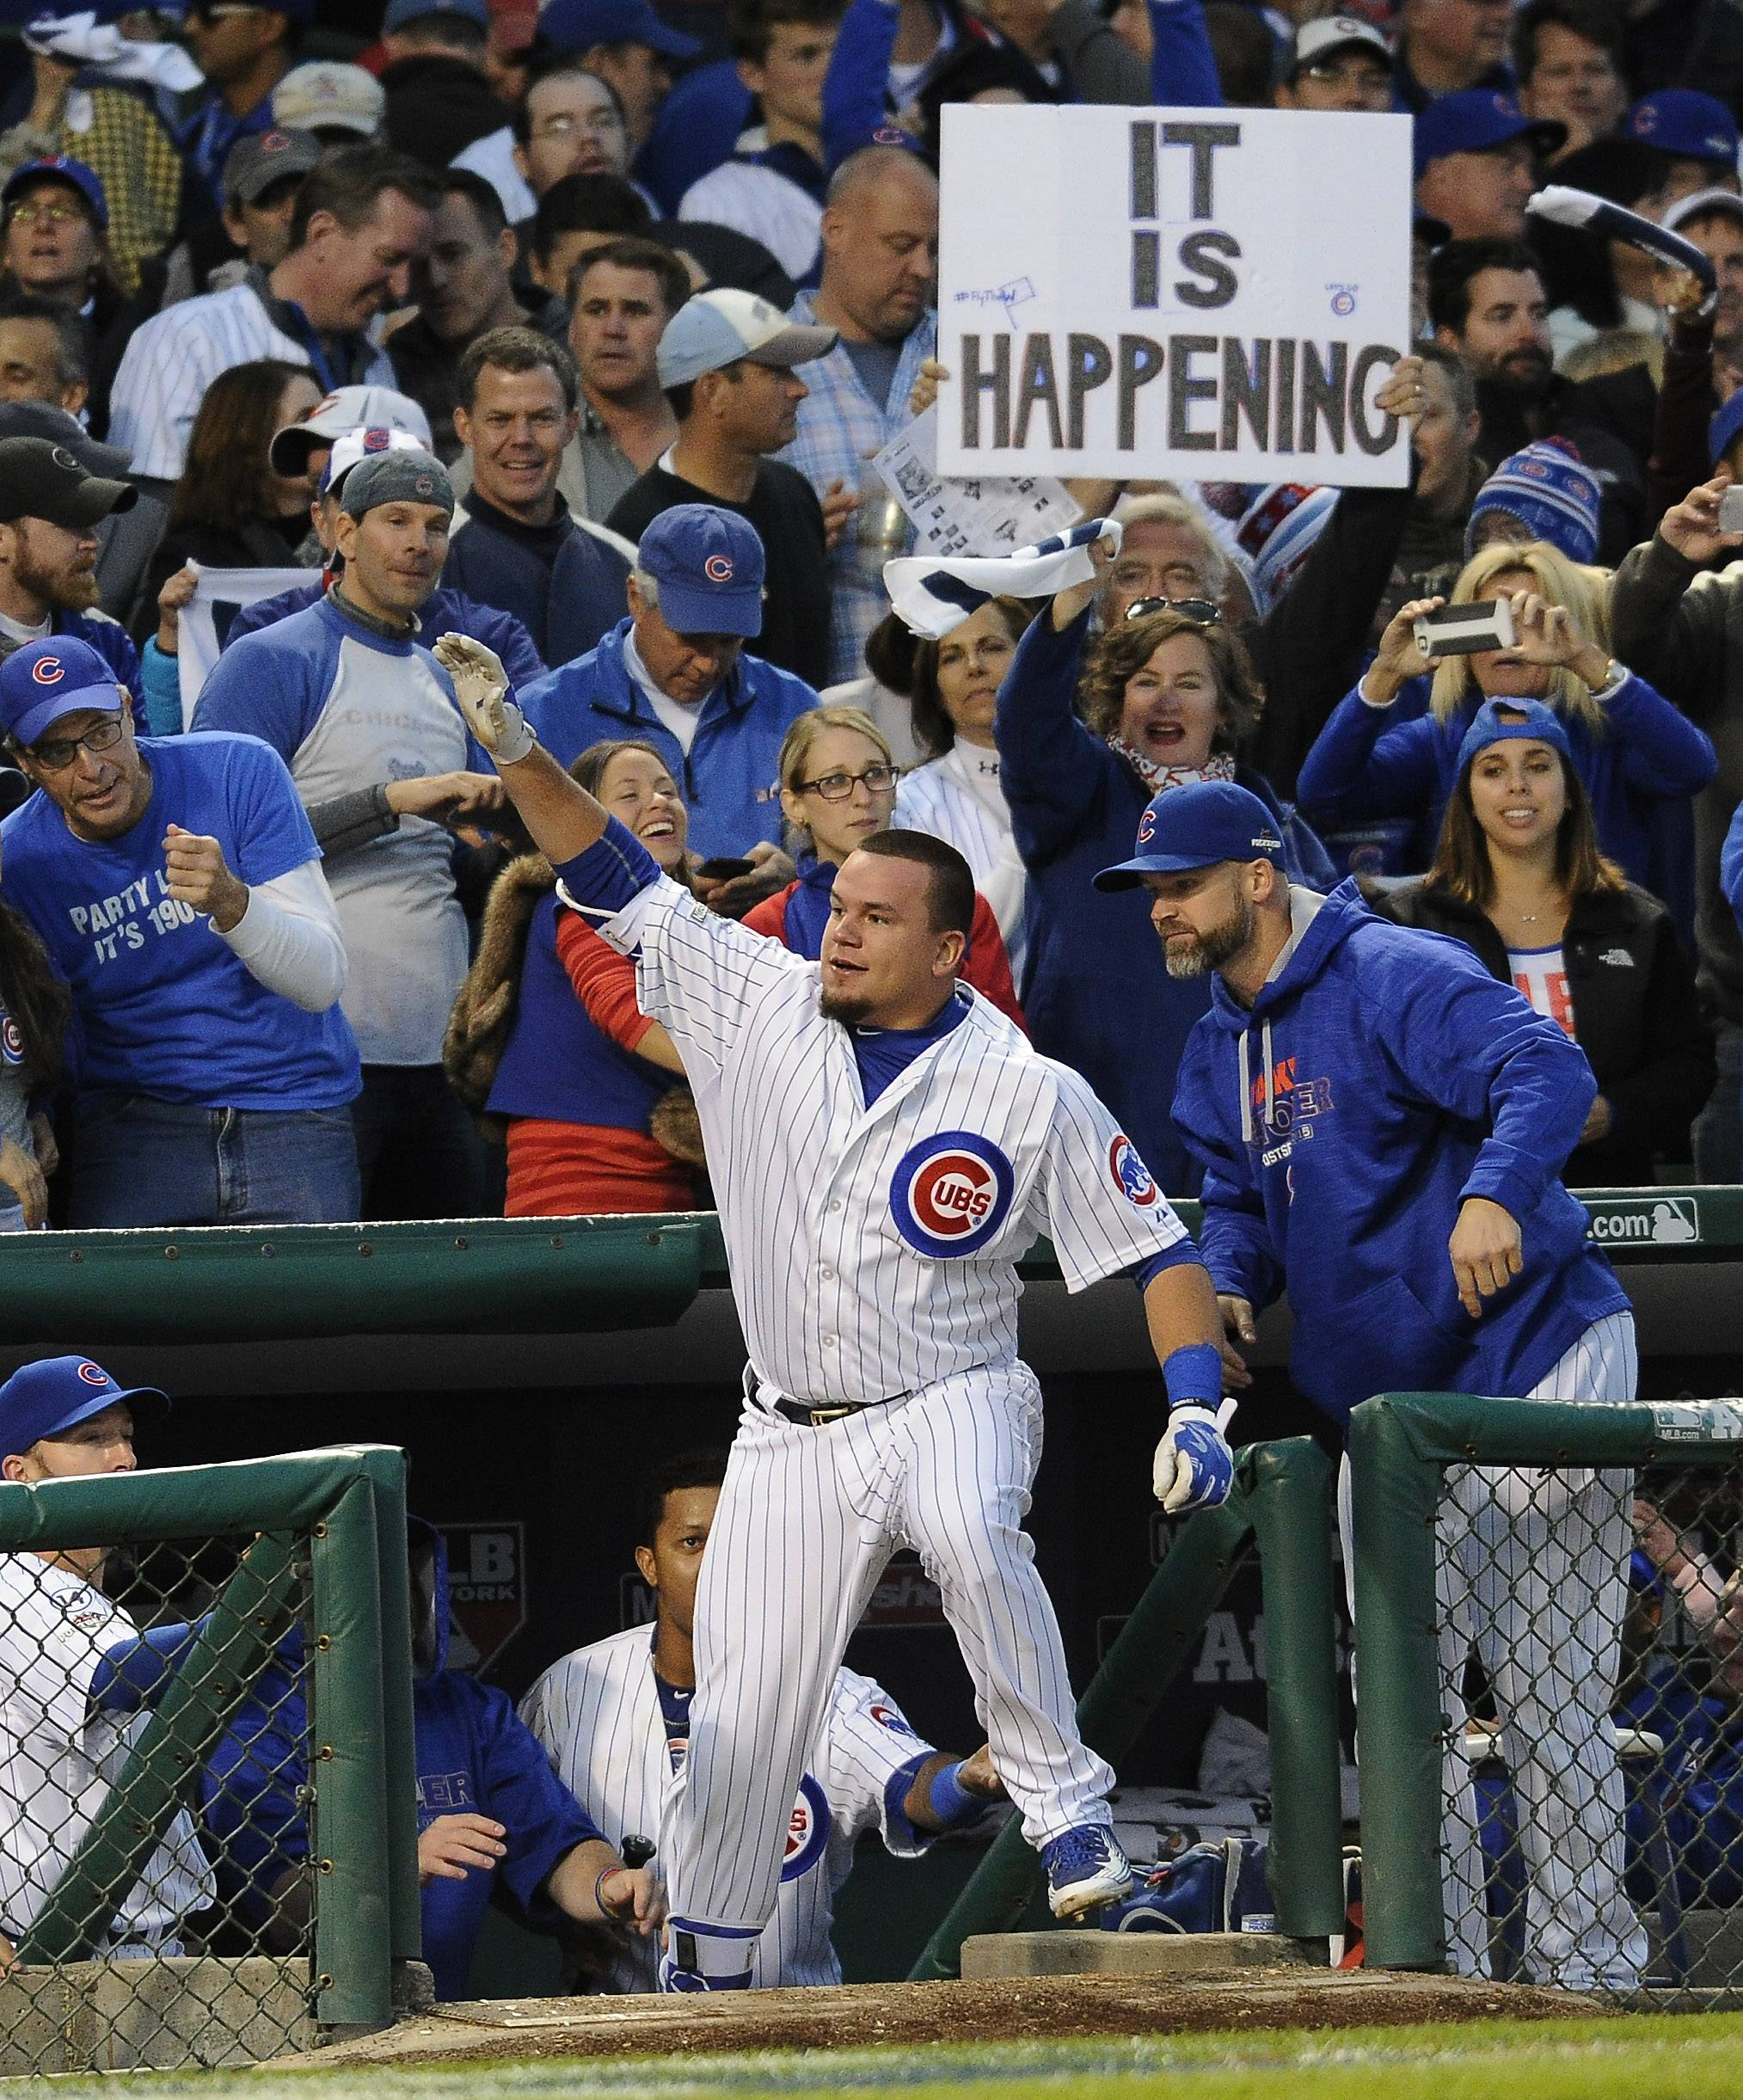 Kyle Schwarber celebrates after hitting a massive home run in bottom of the seventh inning as the Cubs beat the Cardinals 6-4 in Chicago on Oct. 13, 2015 to clinch the National League divisional series.